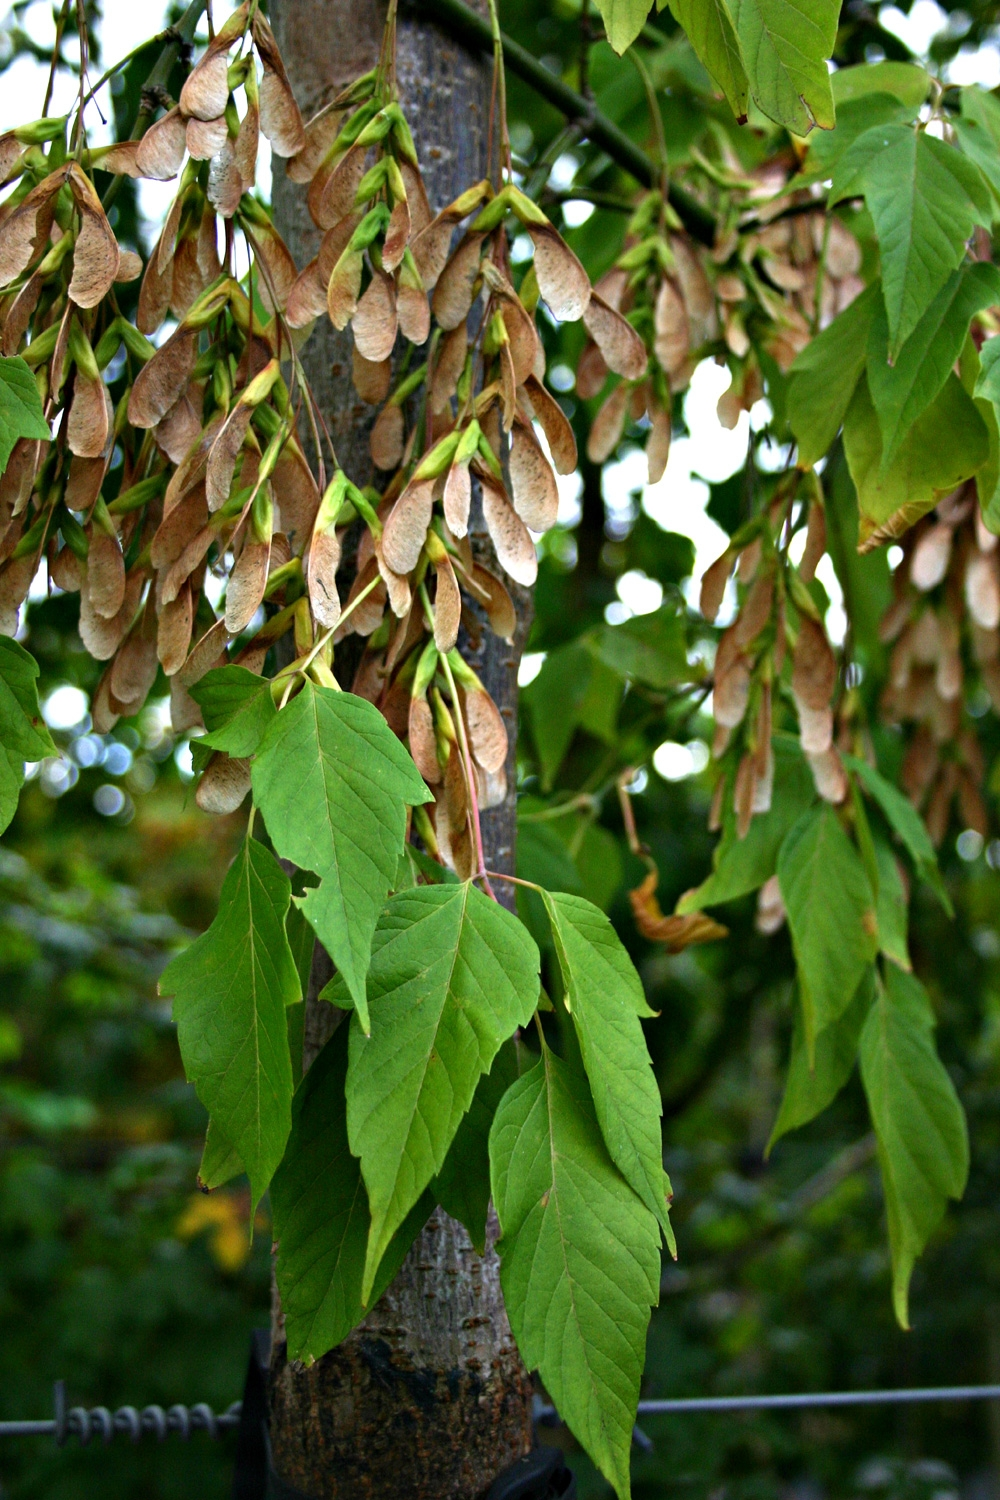 The leaves of Acer negundo